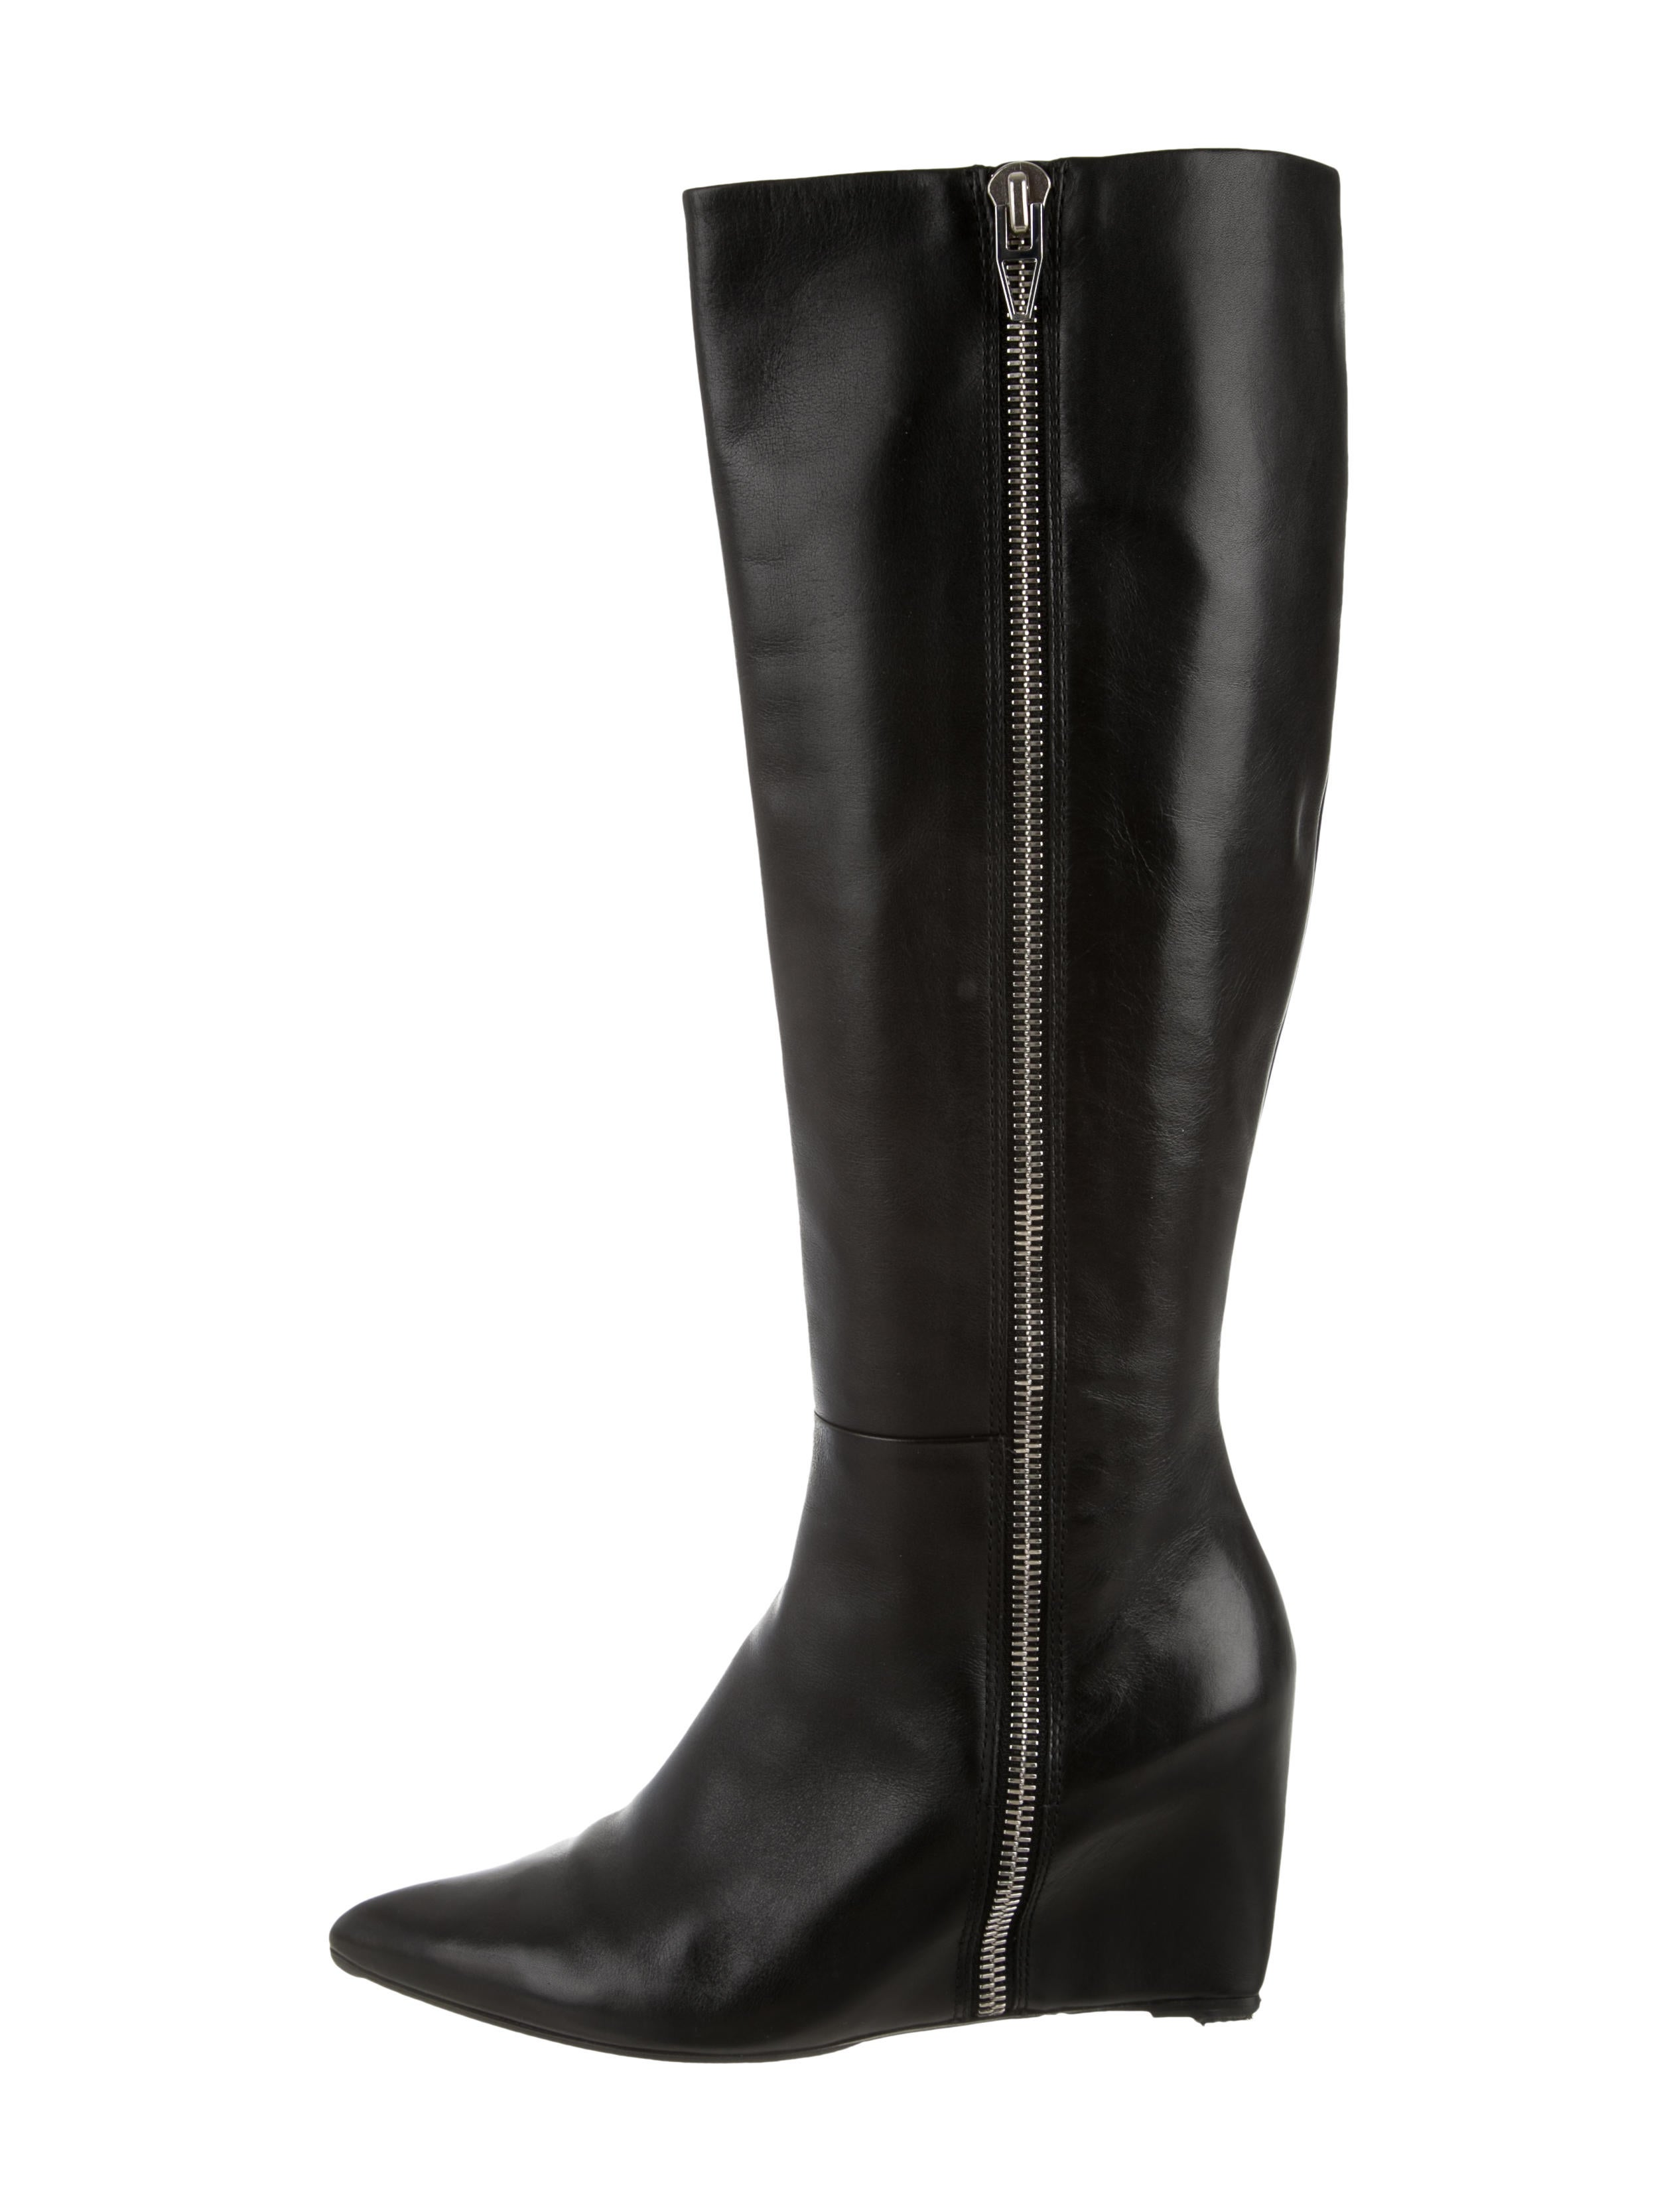 wang leather knee high wedge boots shoes